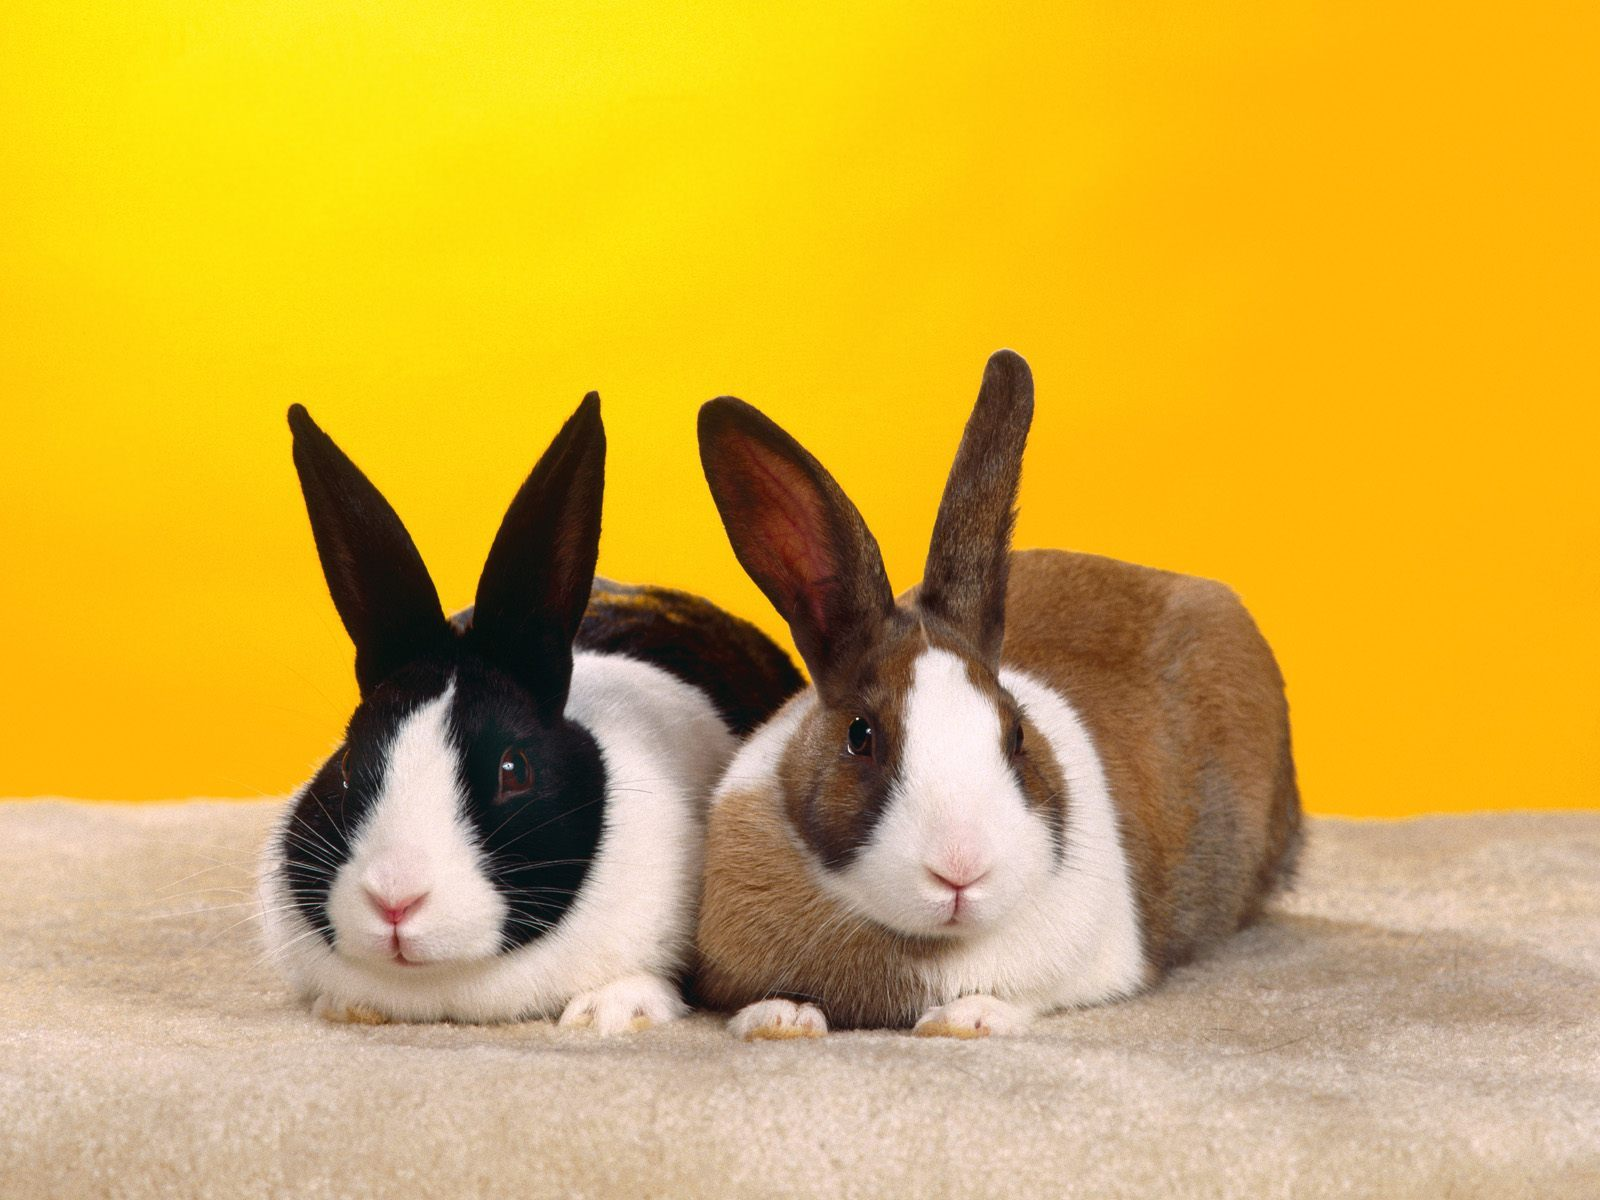 4564 download wallpaper Animals, Rabbits screensavers and pictures for free